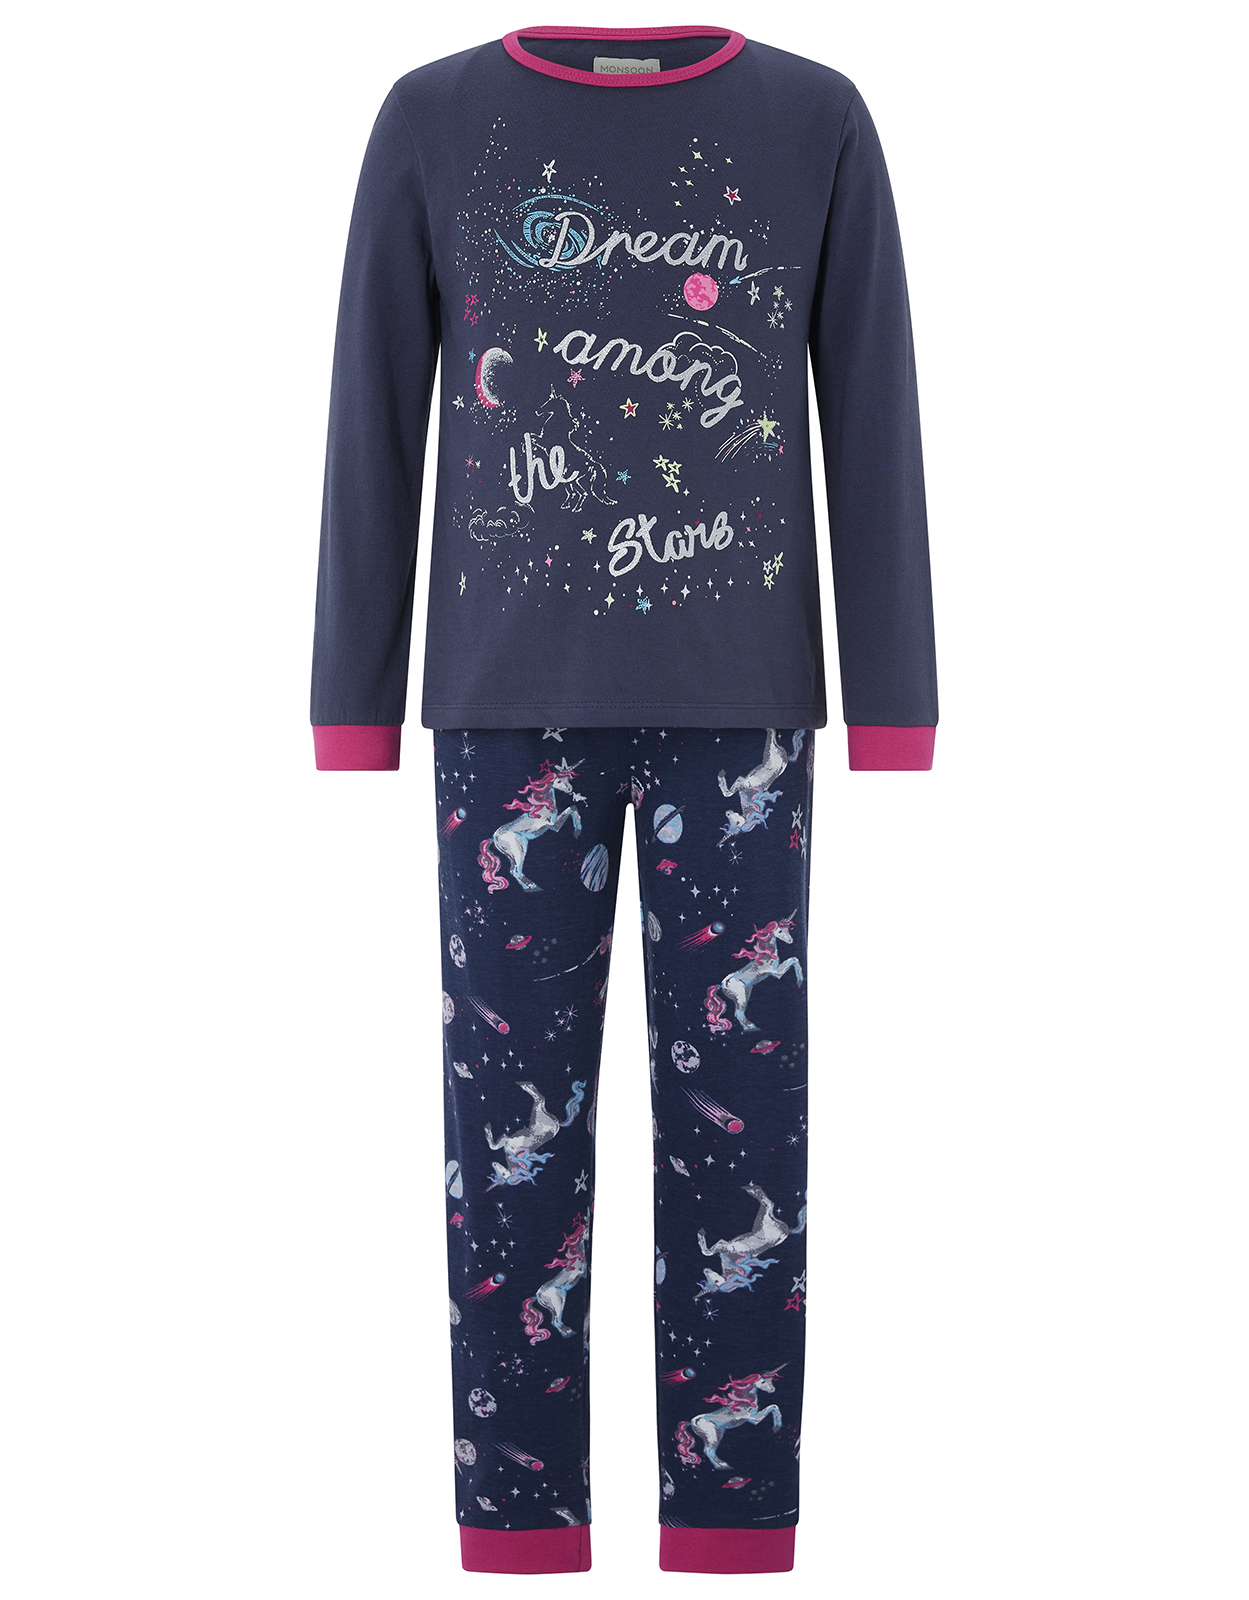 Monsoon Dream Among The Stars Glow in the Dark Pyjama Set